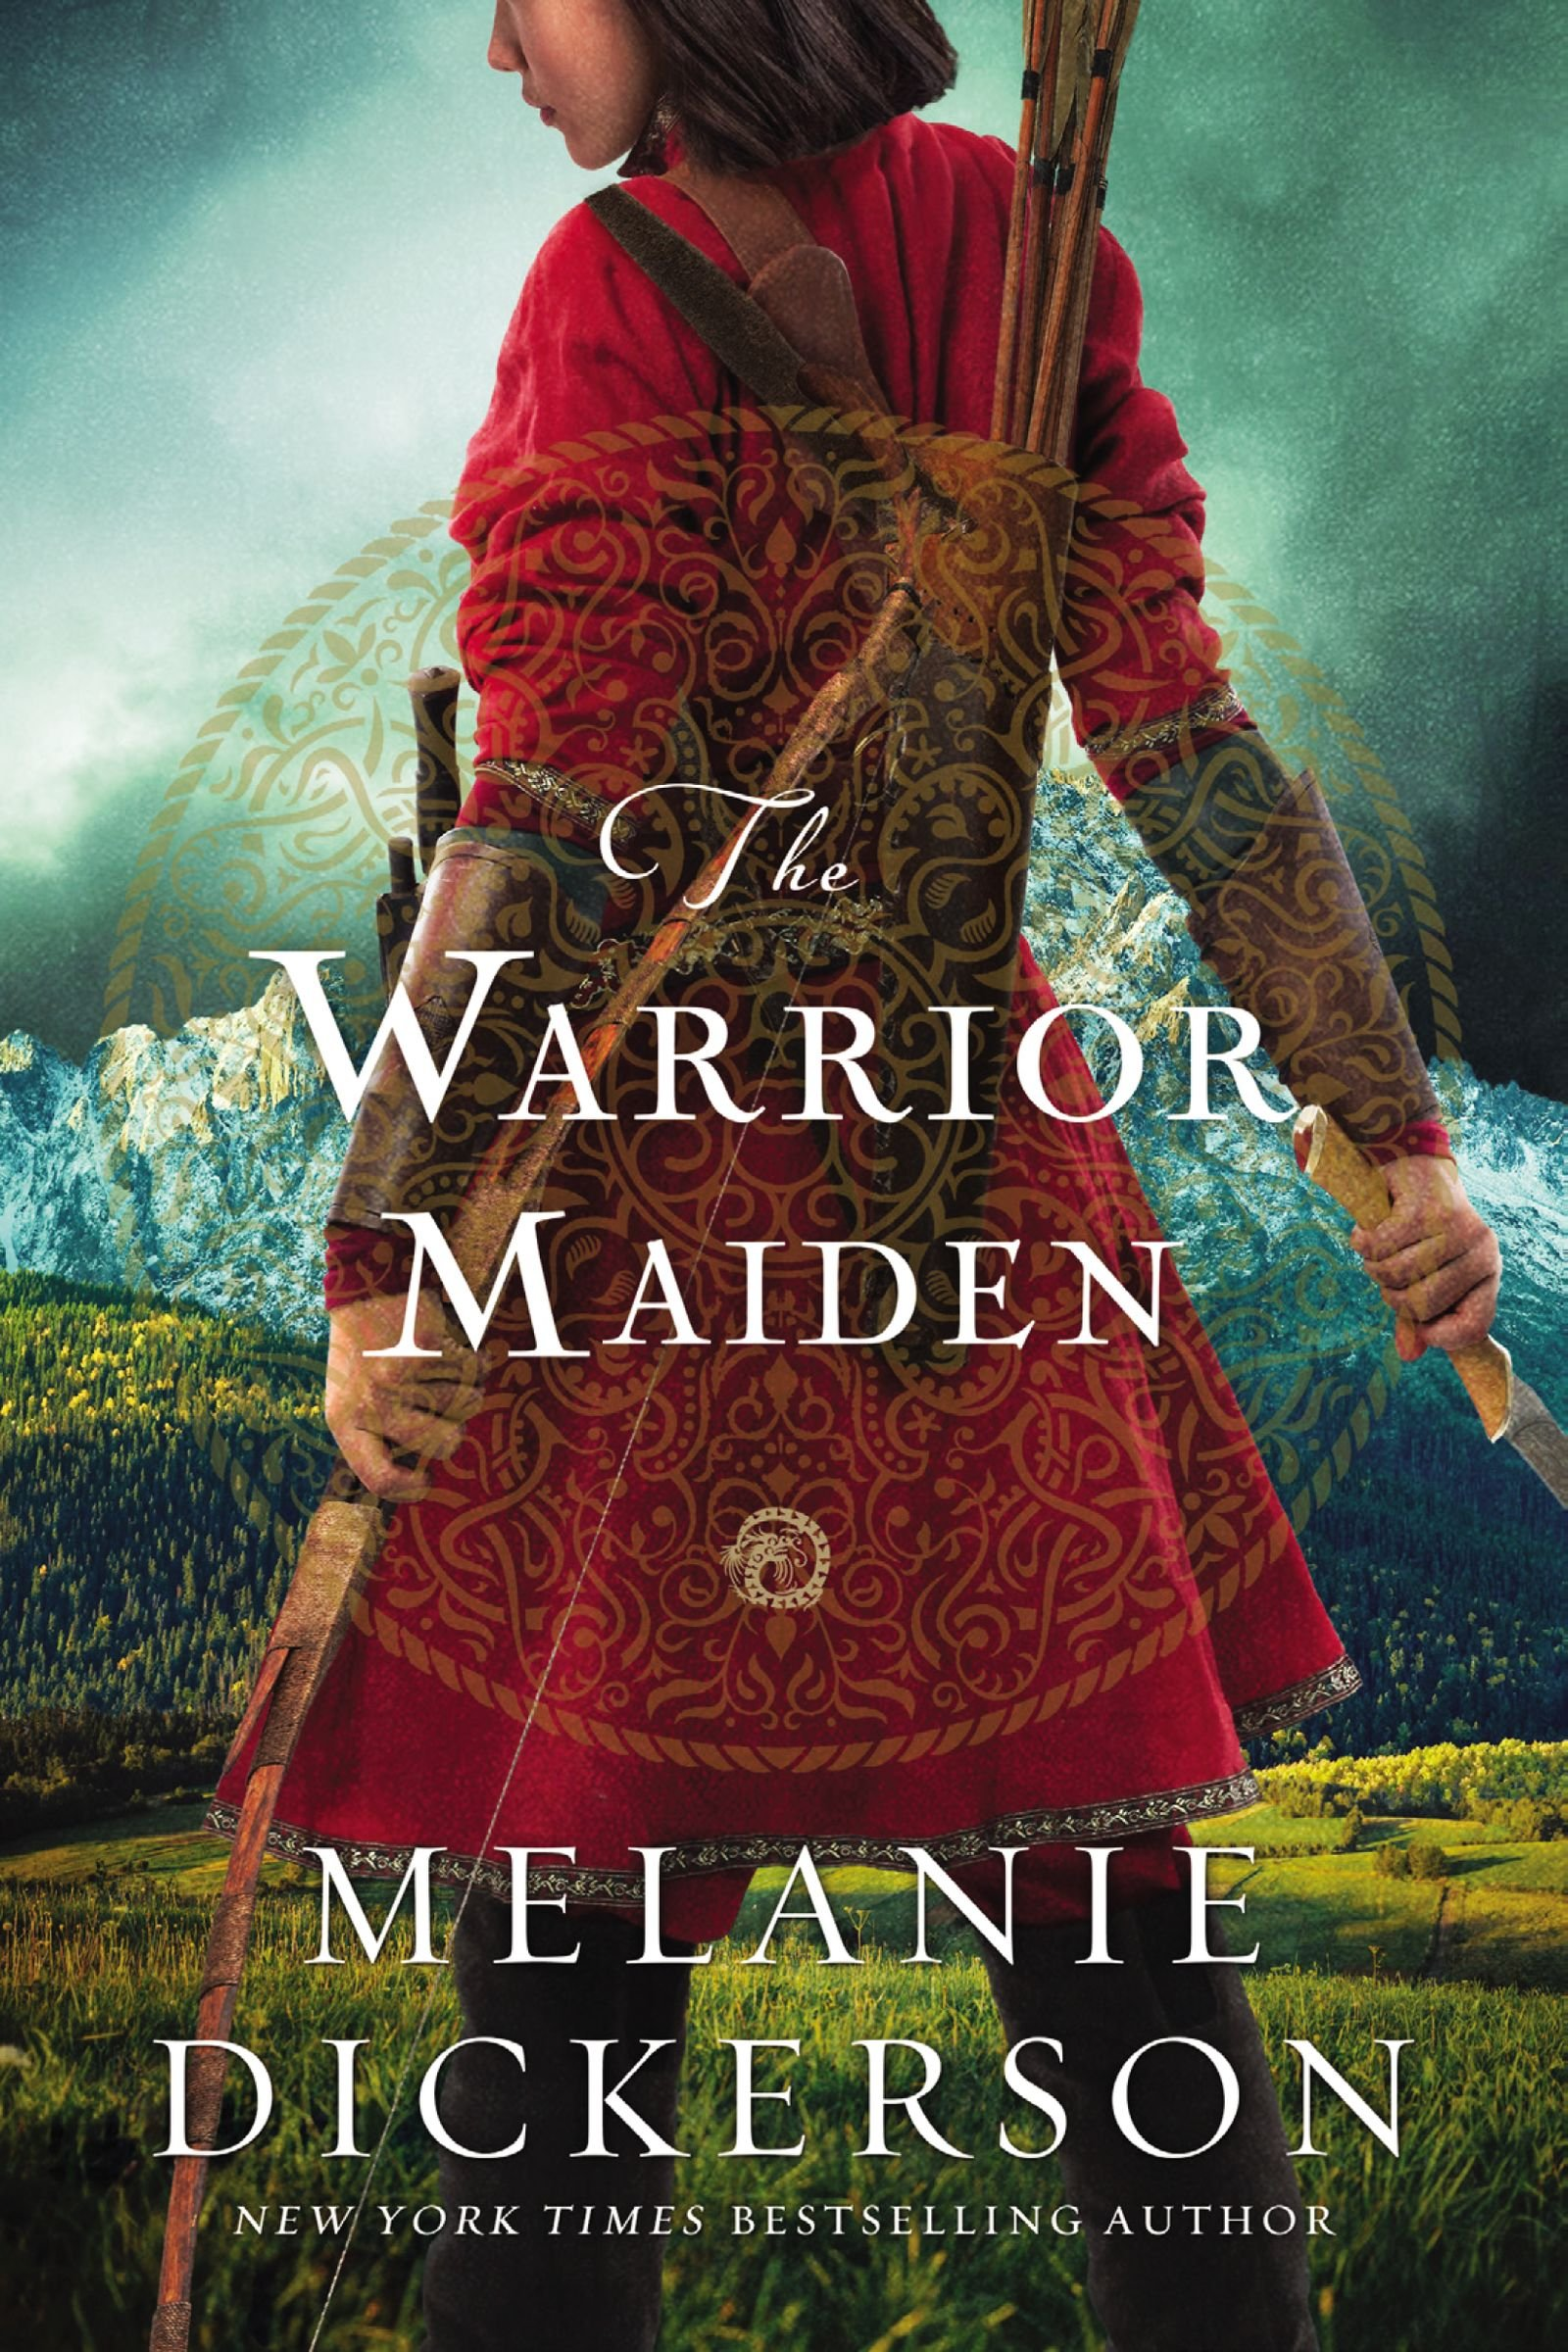 Review: The Warrior Maiden by Melanie Dickerson | The Nerd Daily